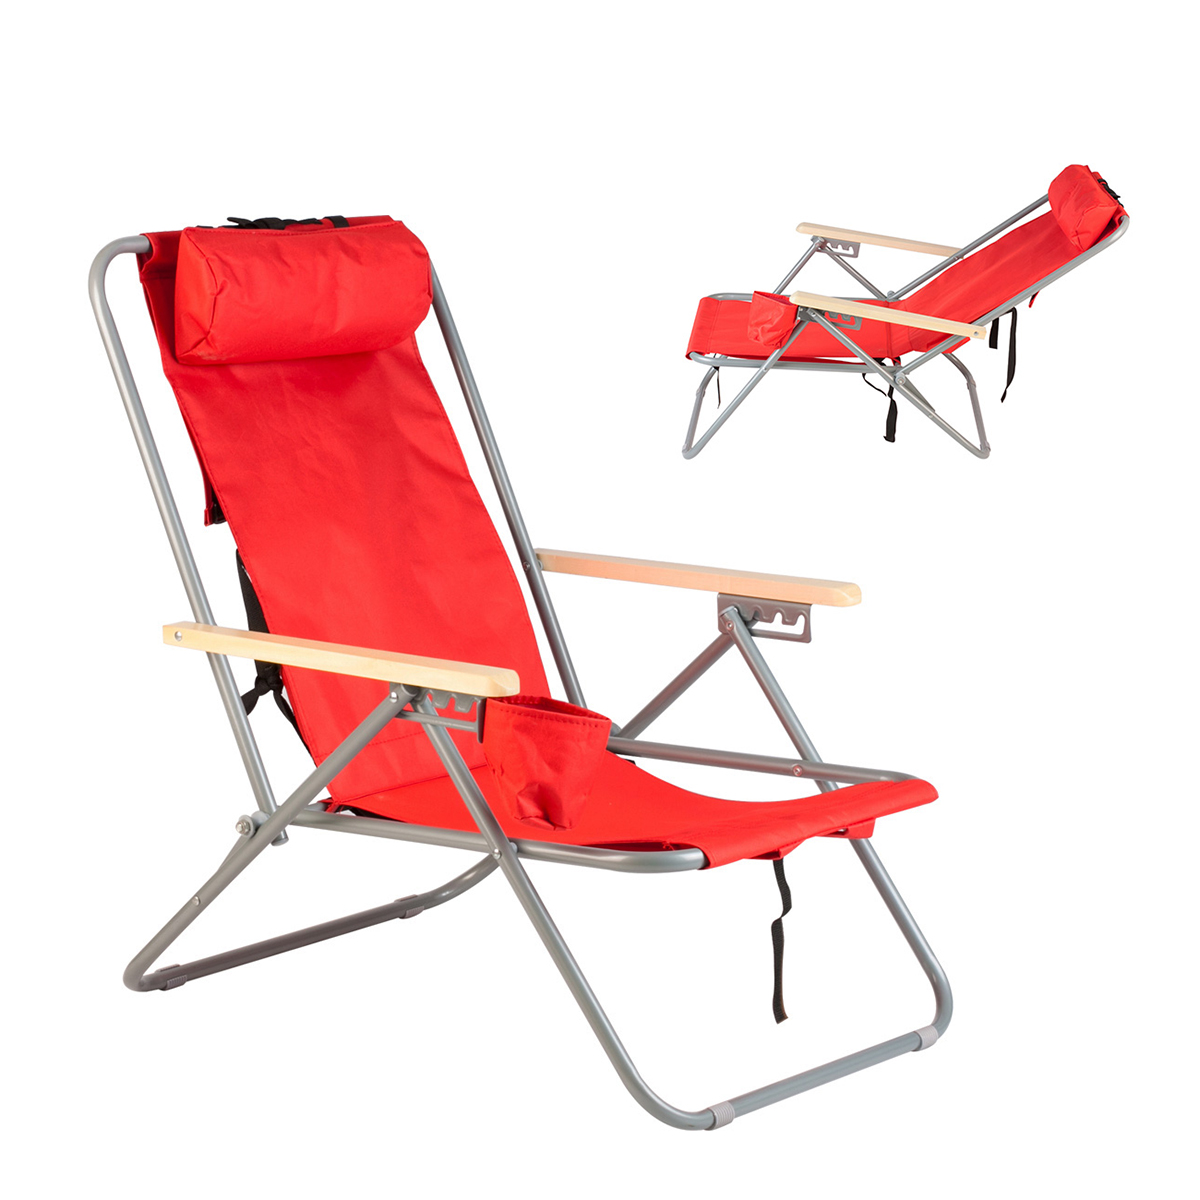 Backpack Beach Chair Folding Portable Chair Red Solid Construction Camping Ne